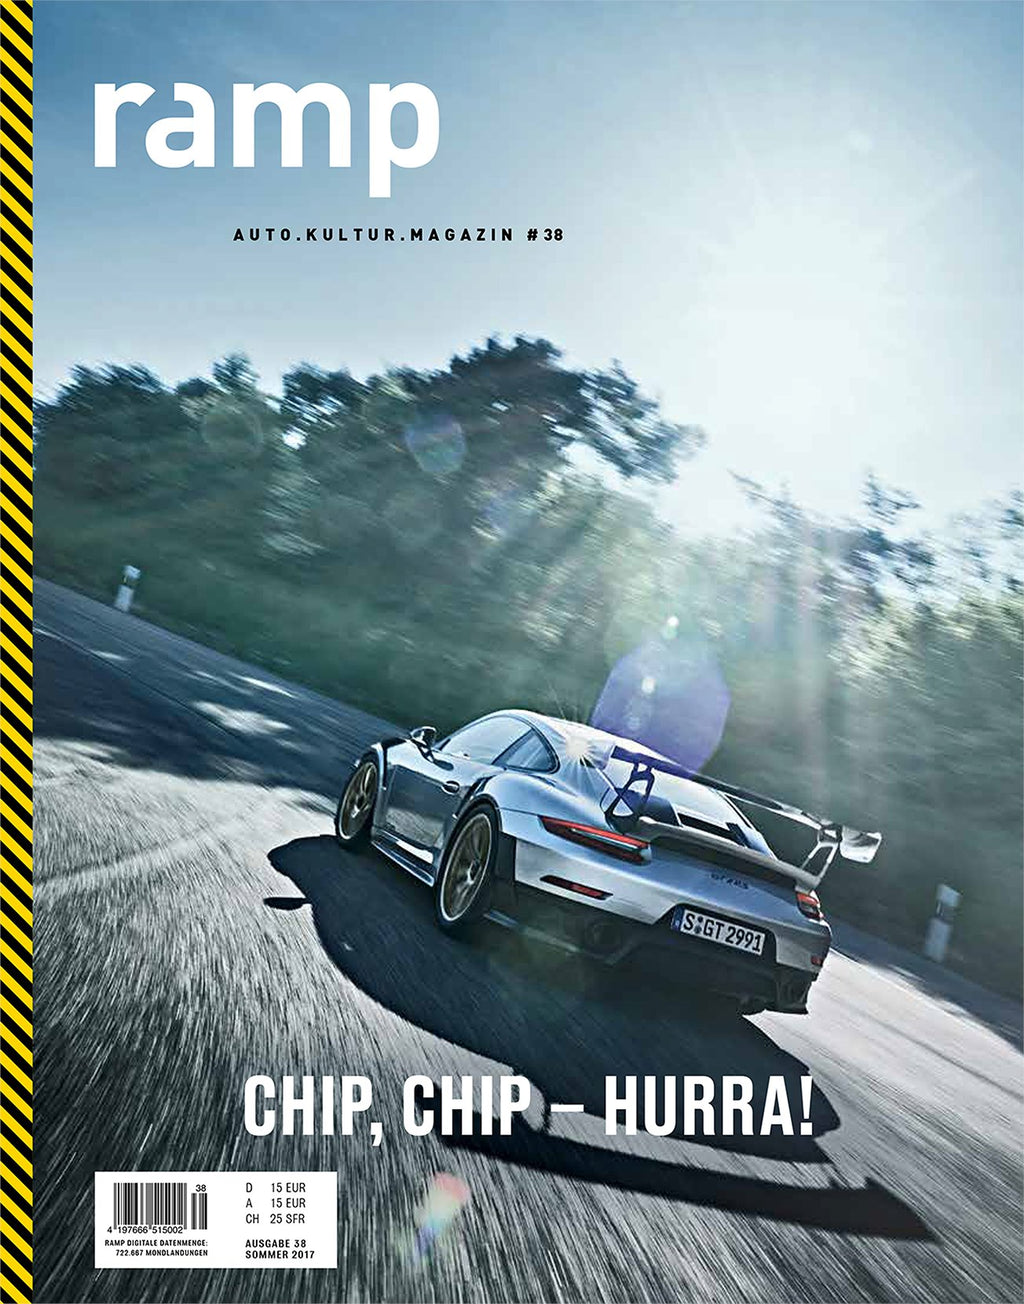 ramp #38 – Chip, Chip – Hurra! - ramp.space